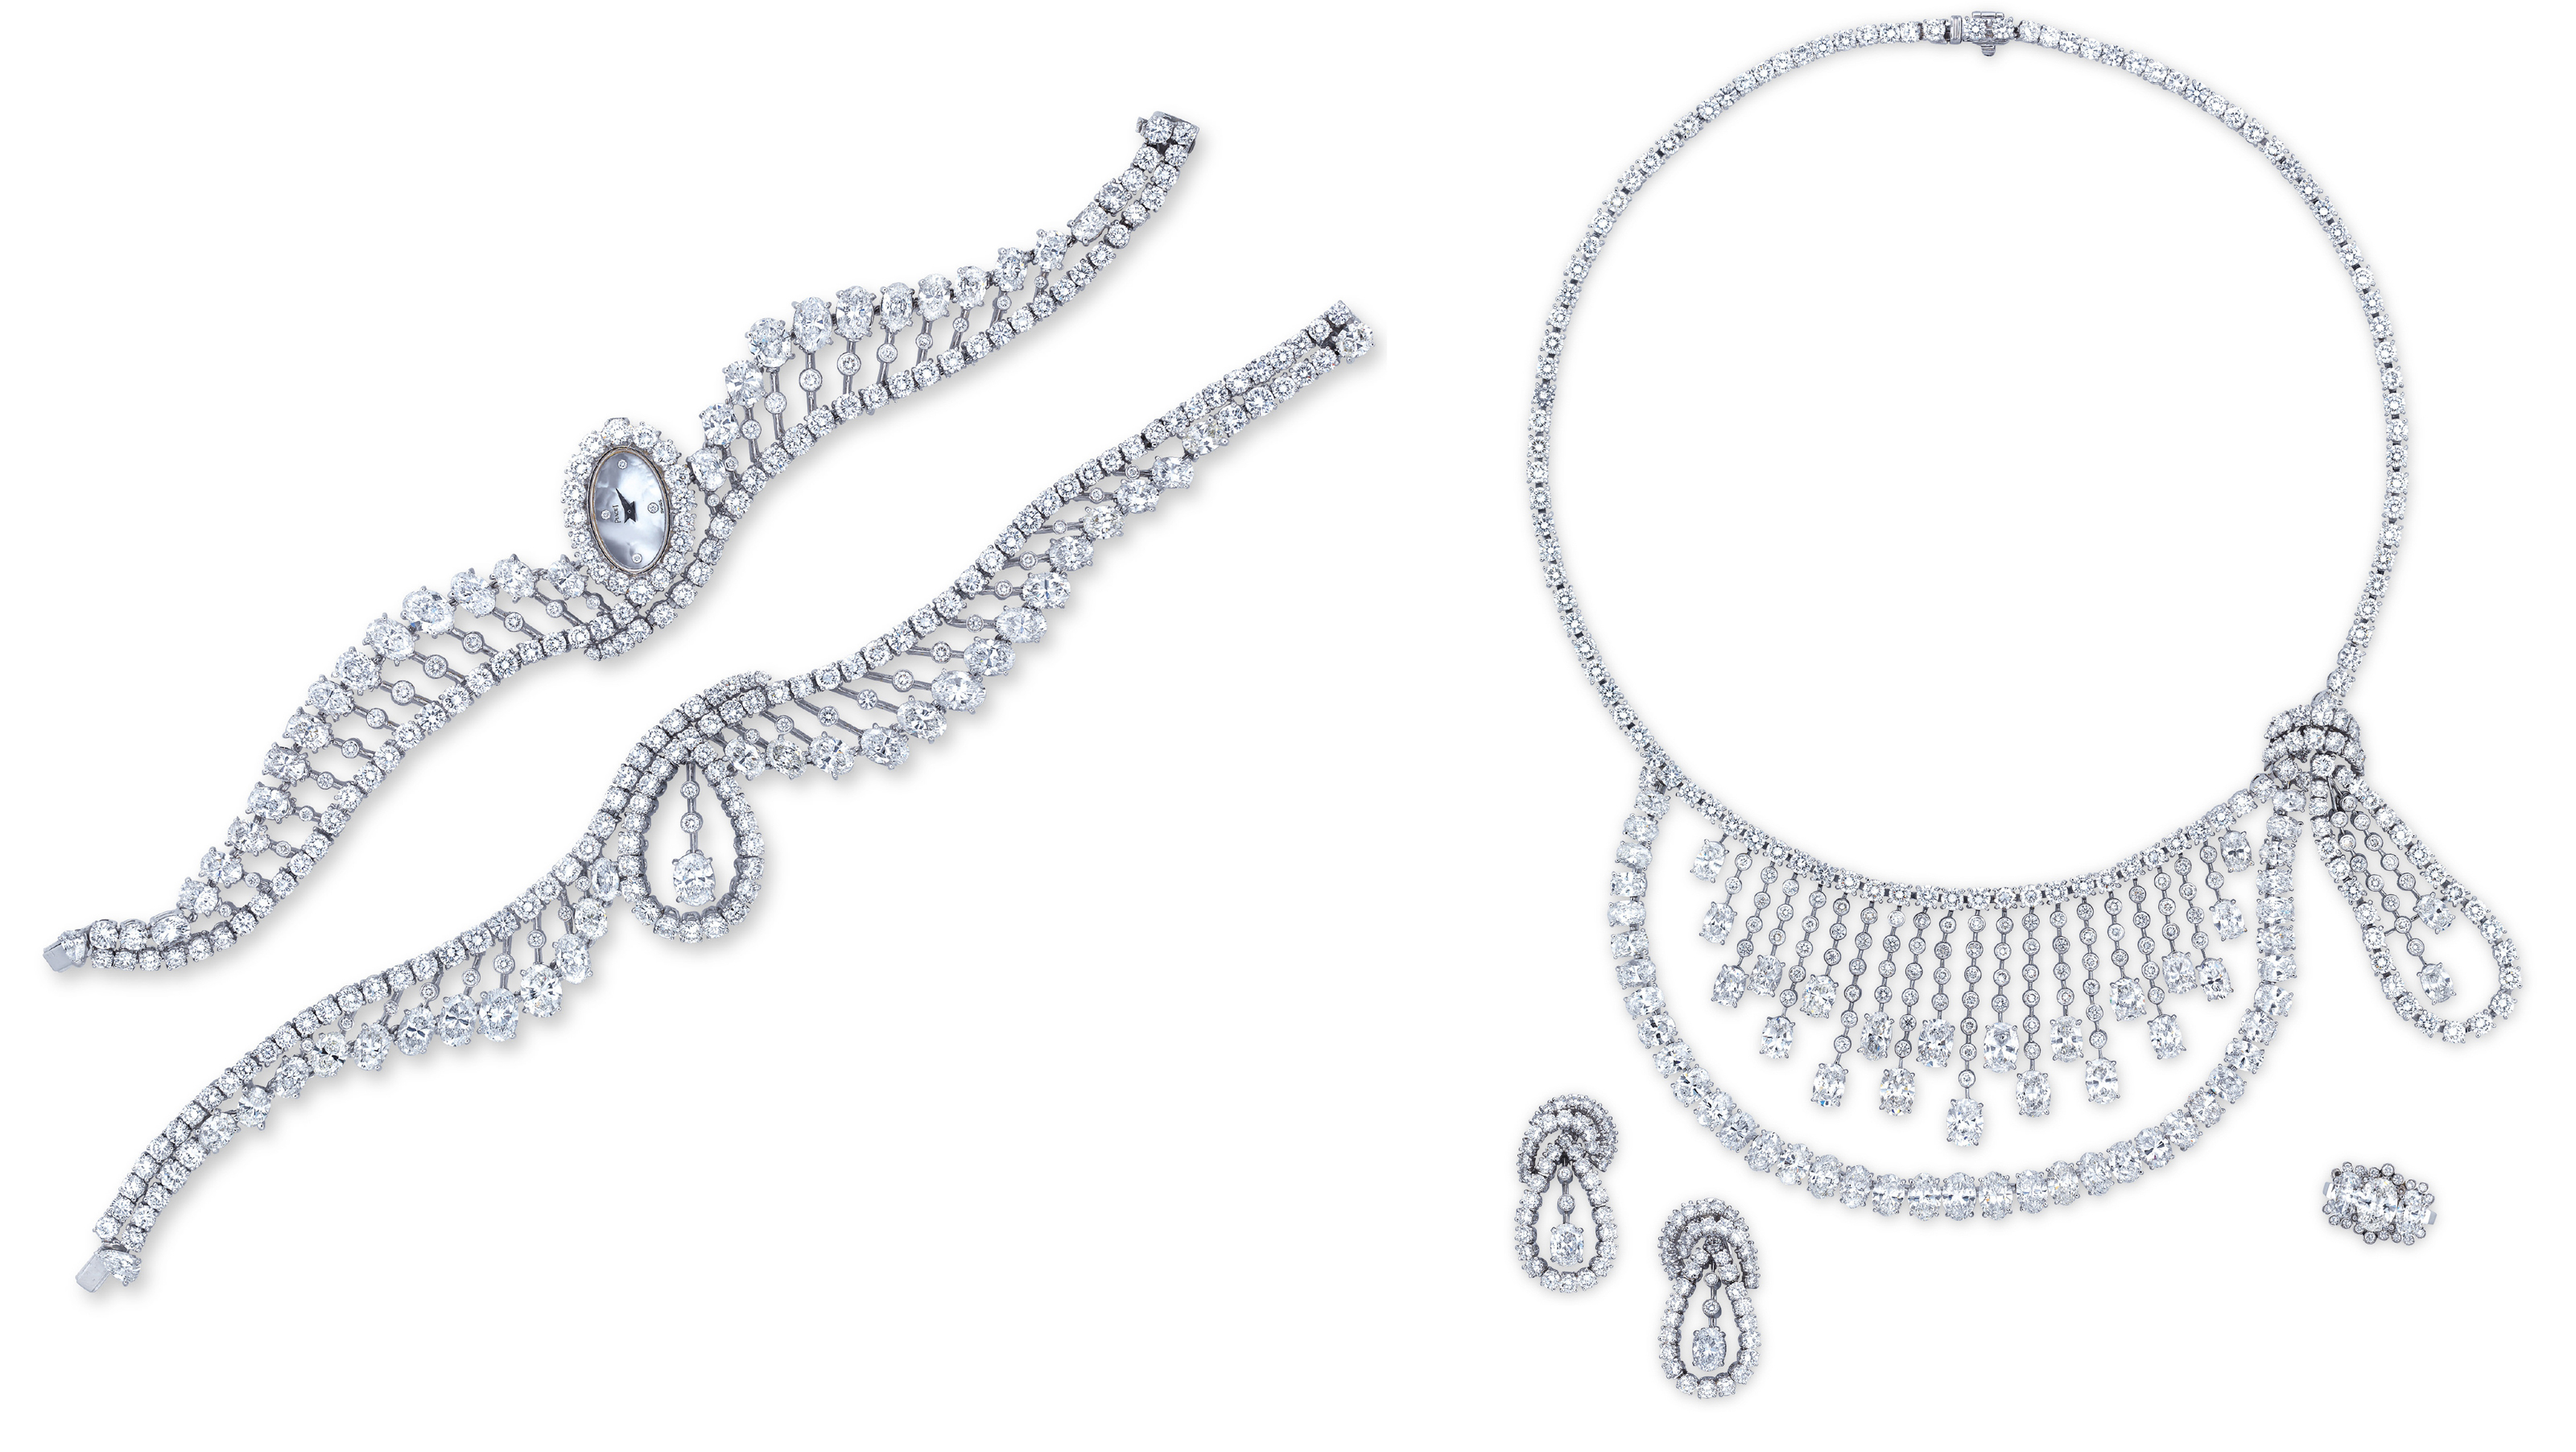 A SUITE OF DIAMOND AND MOTHER-OF-PEARL JEWELLERY